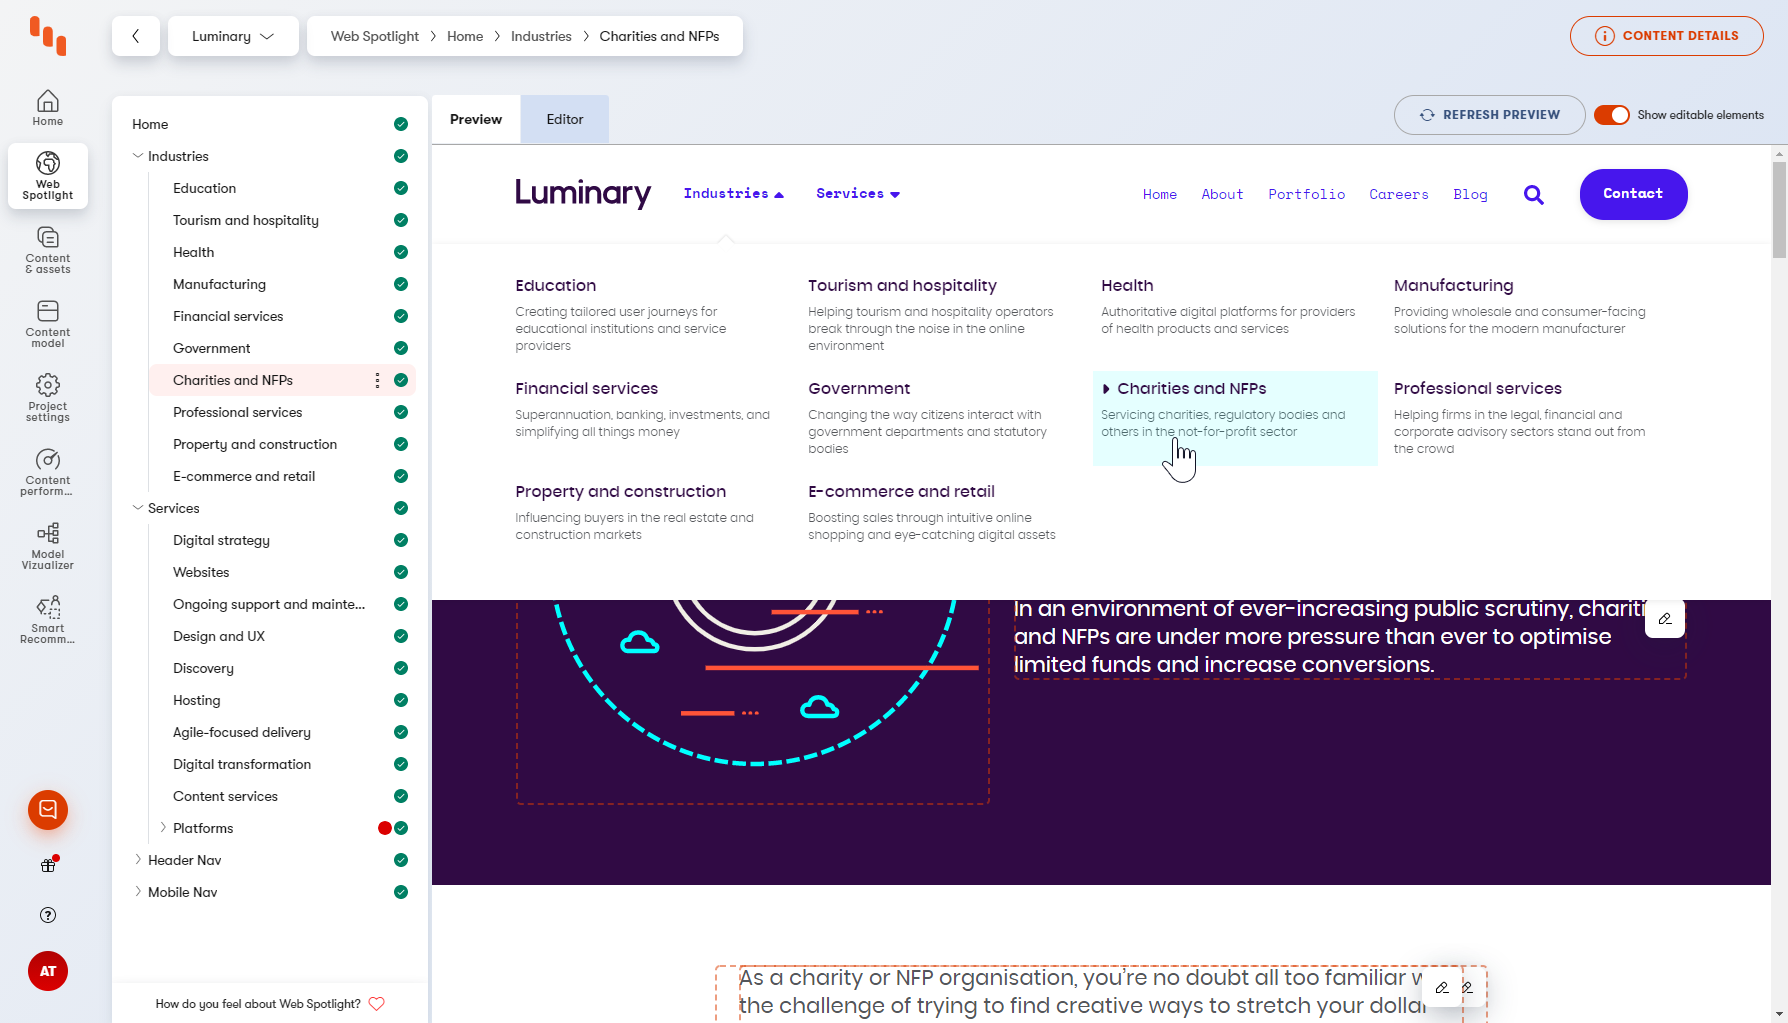 Luminary's website navigation is set up in Web Spotlight independent of the page and URL structure